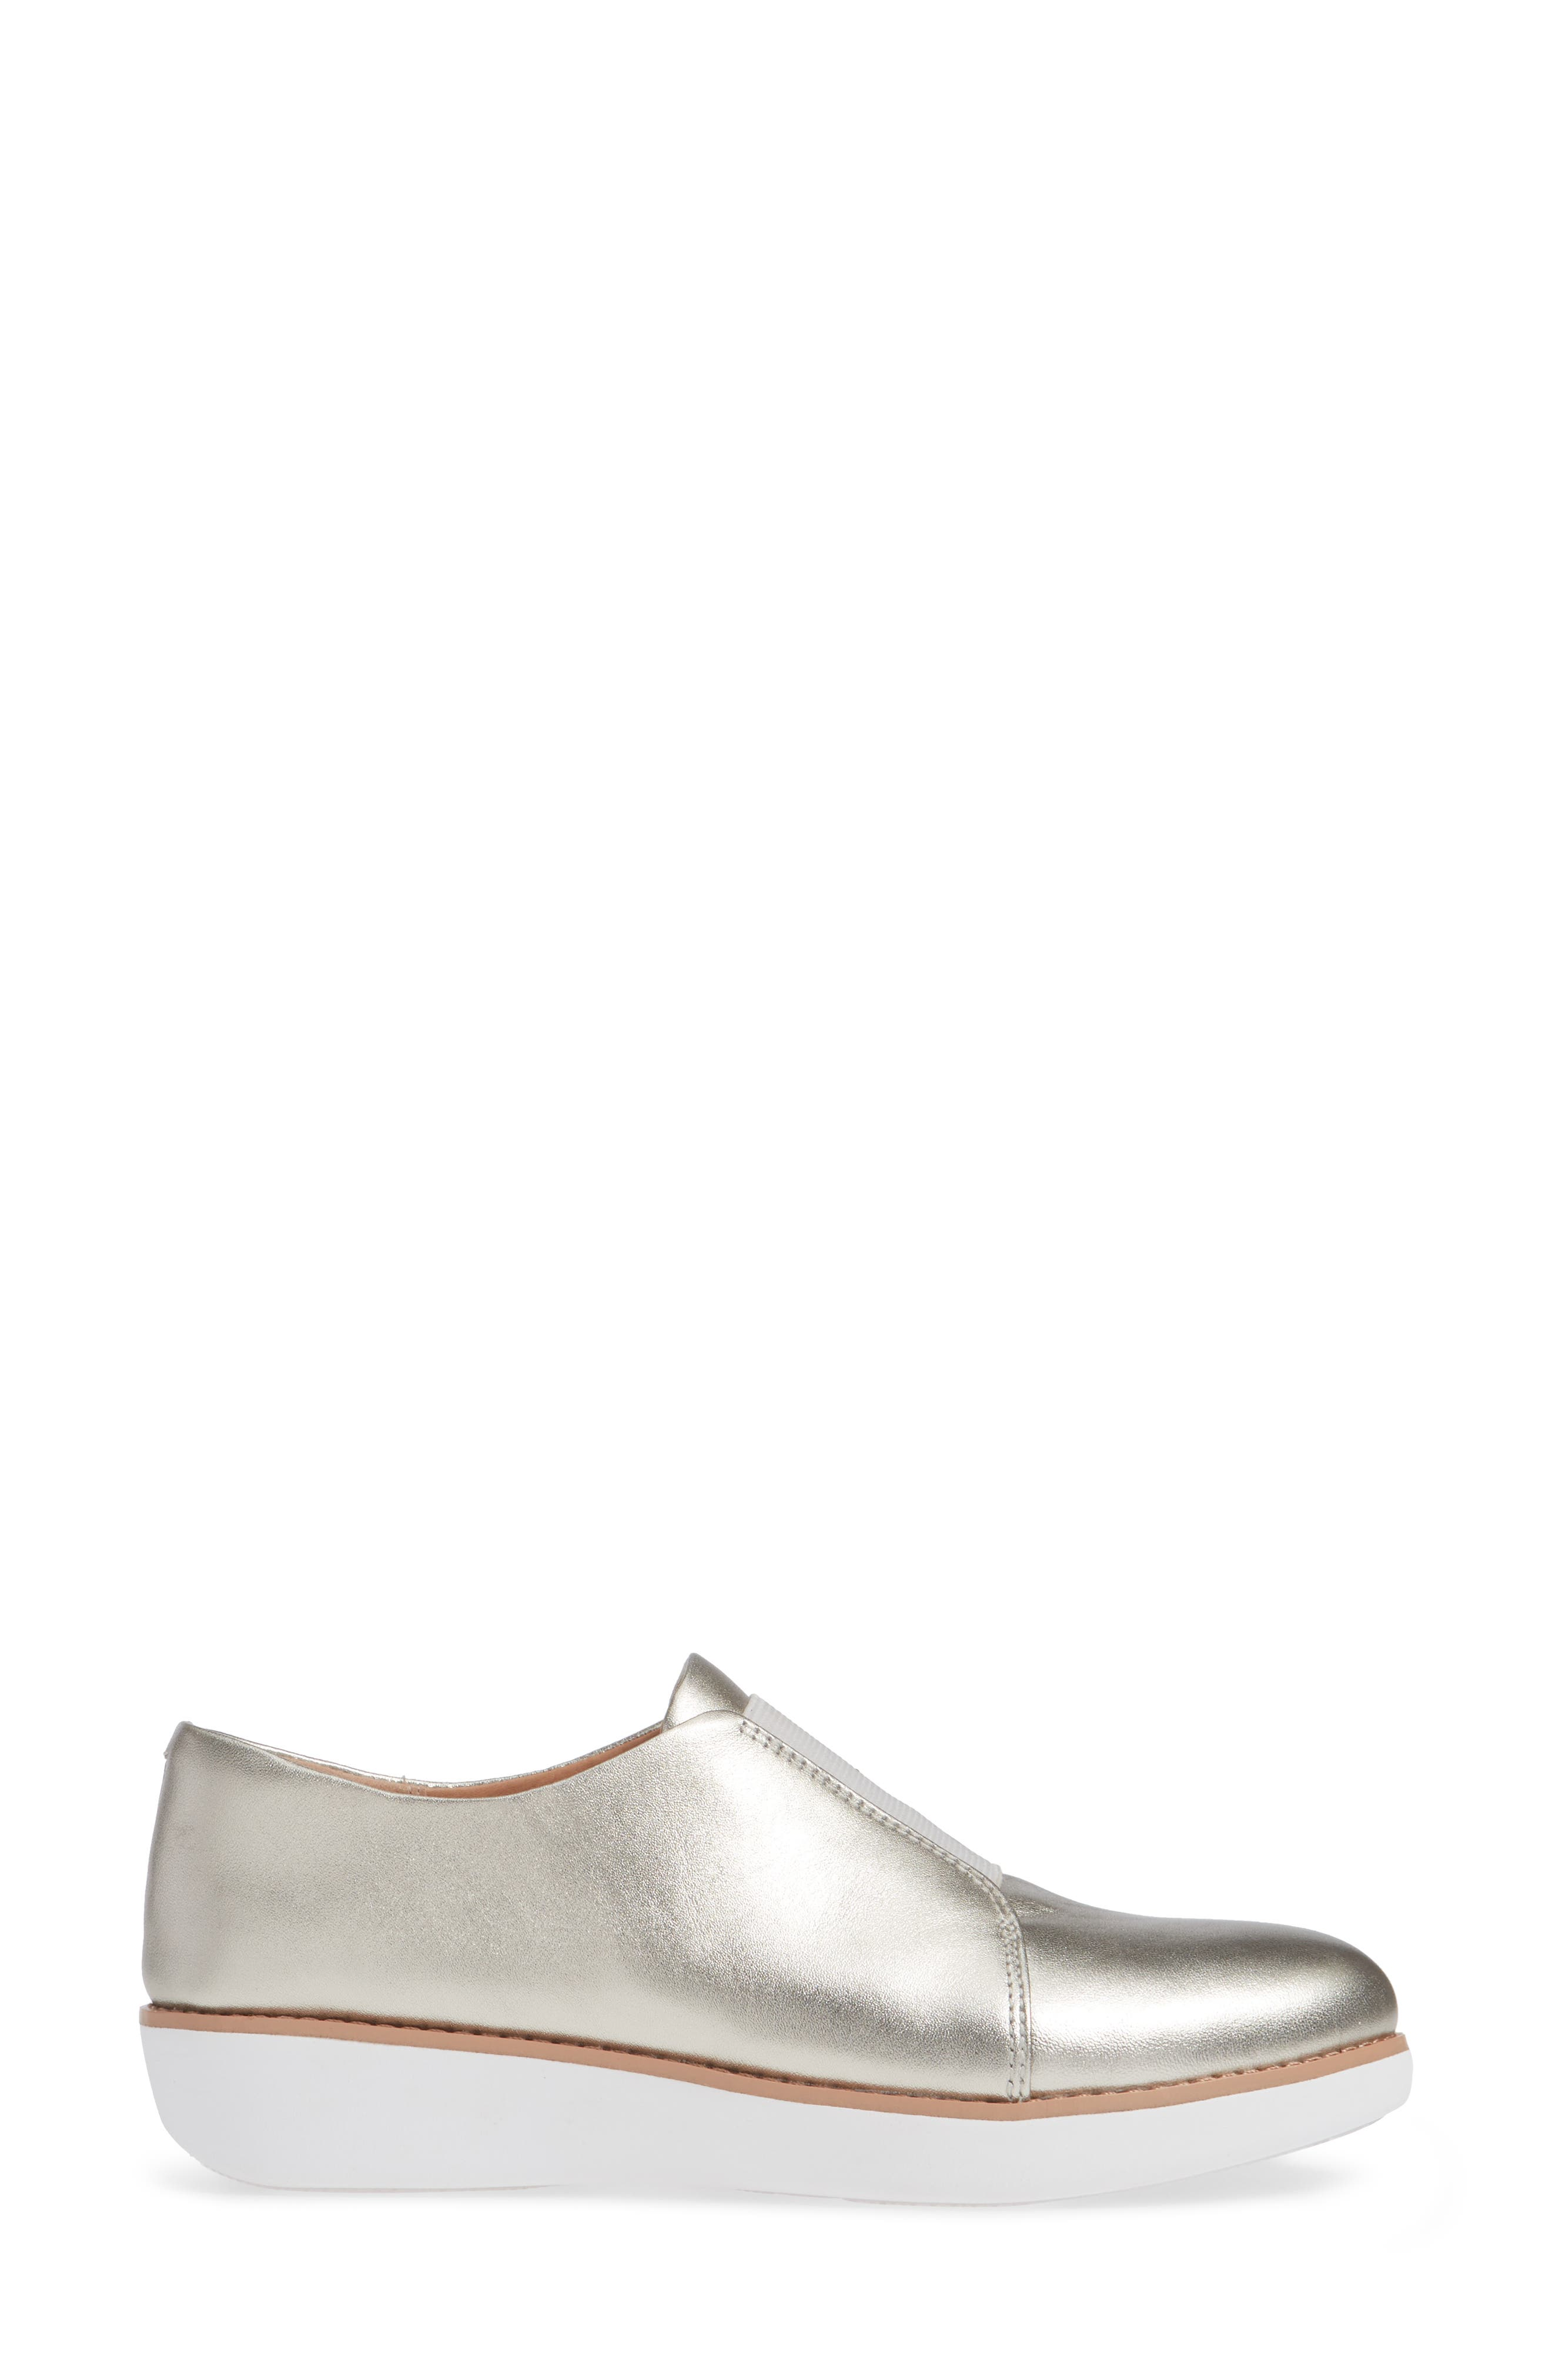 FITFLOP, Laceless Derby, Alternate thumbnail 3, color, 040